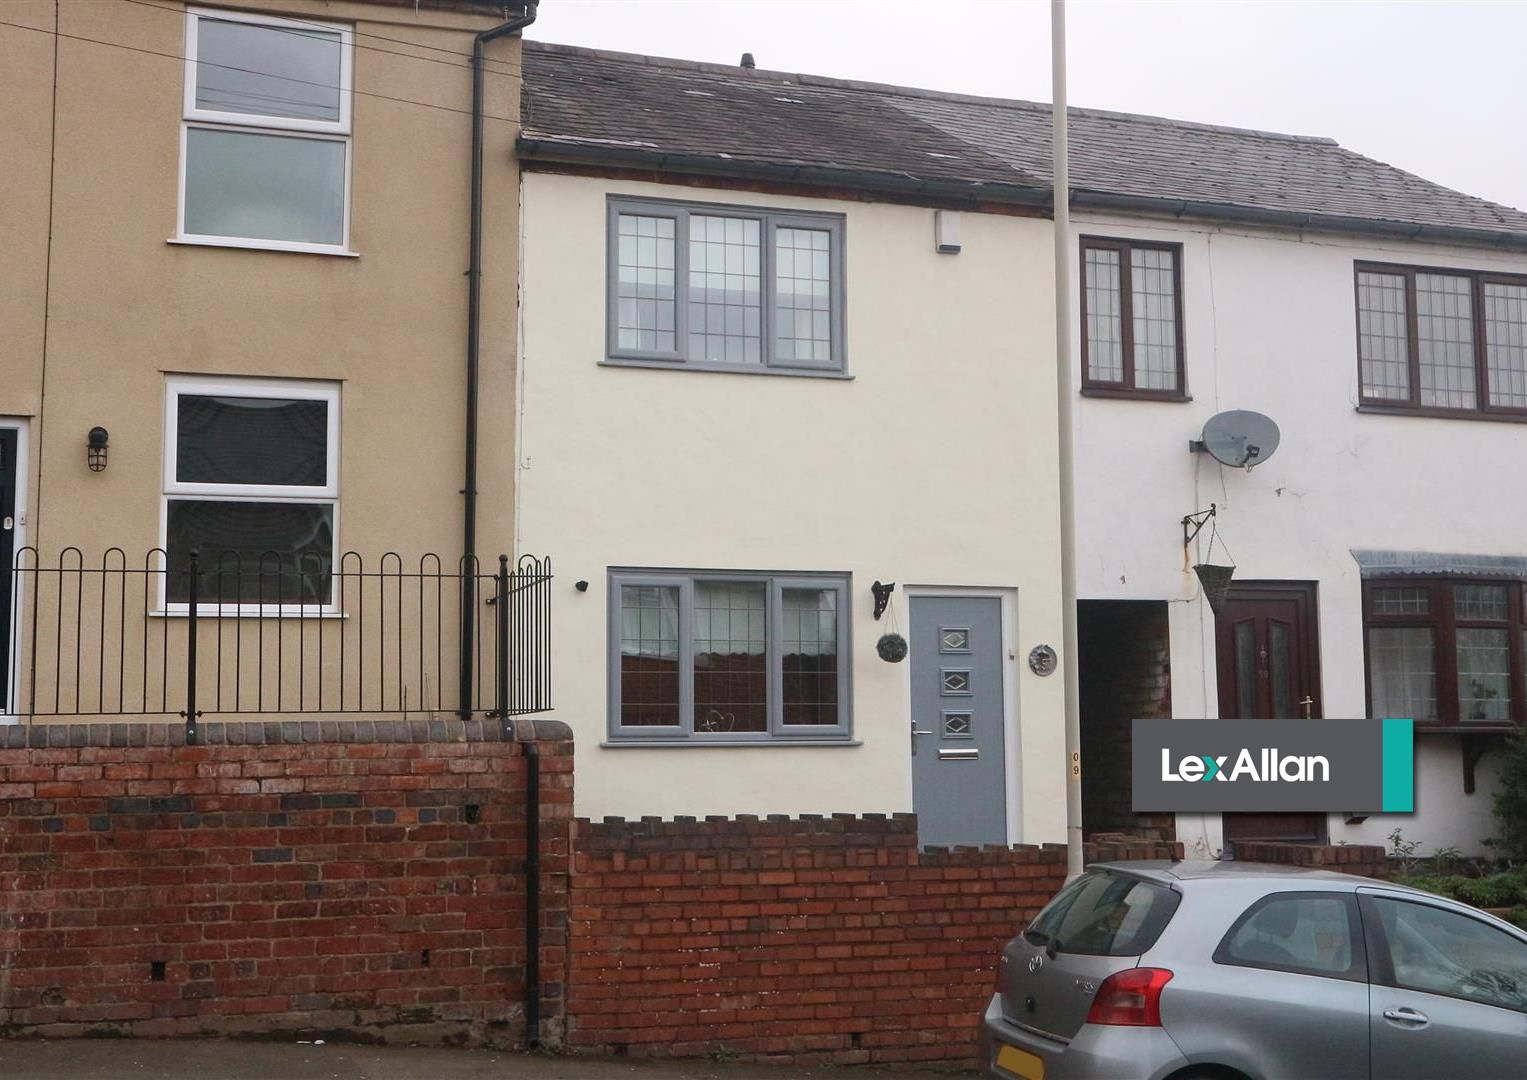 2 bed terraced for sale, DY9